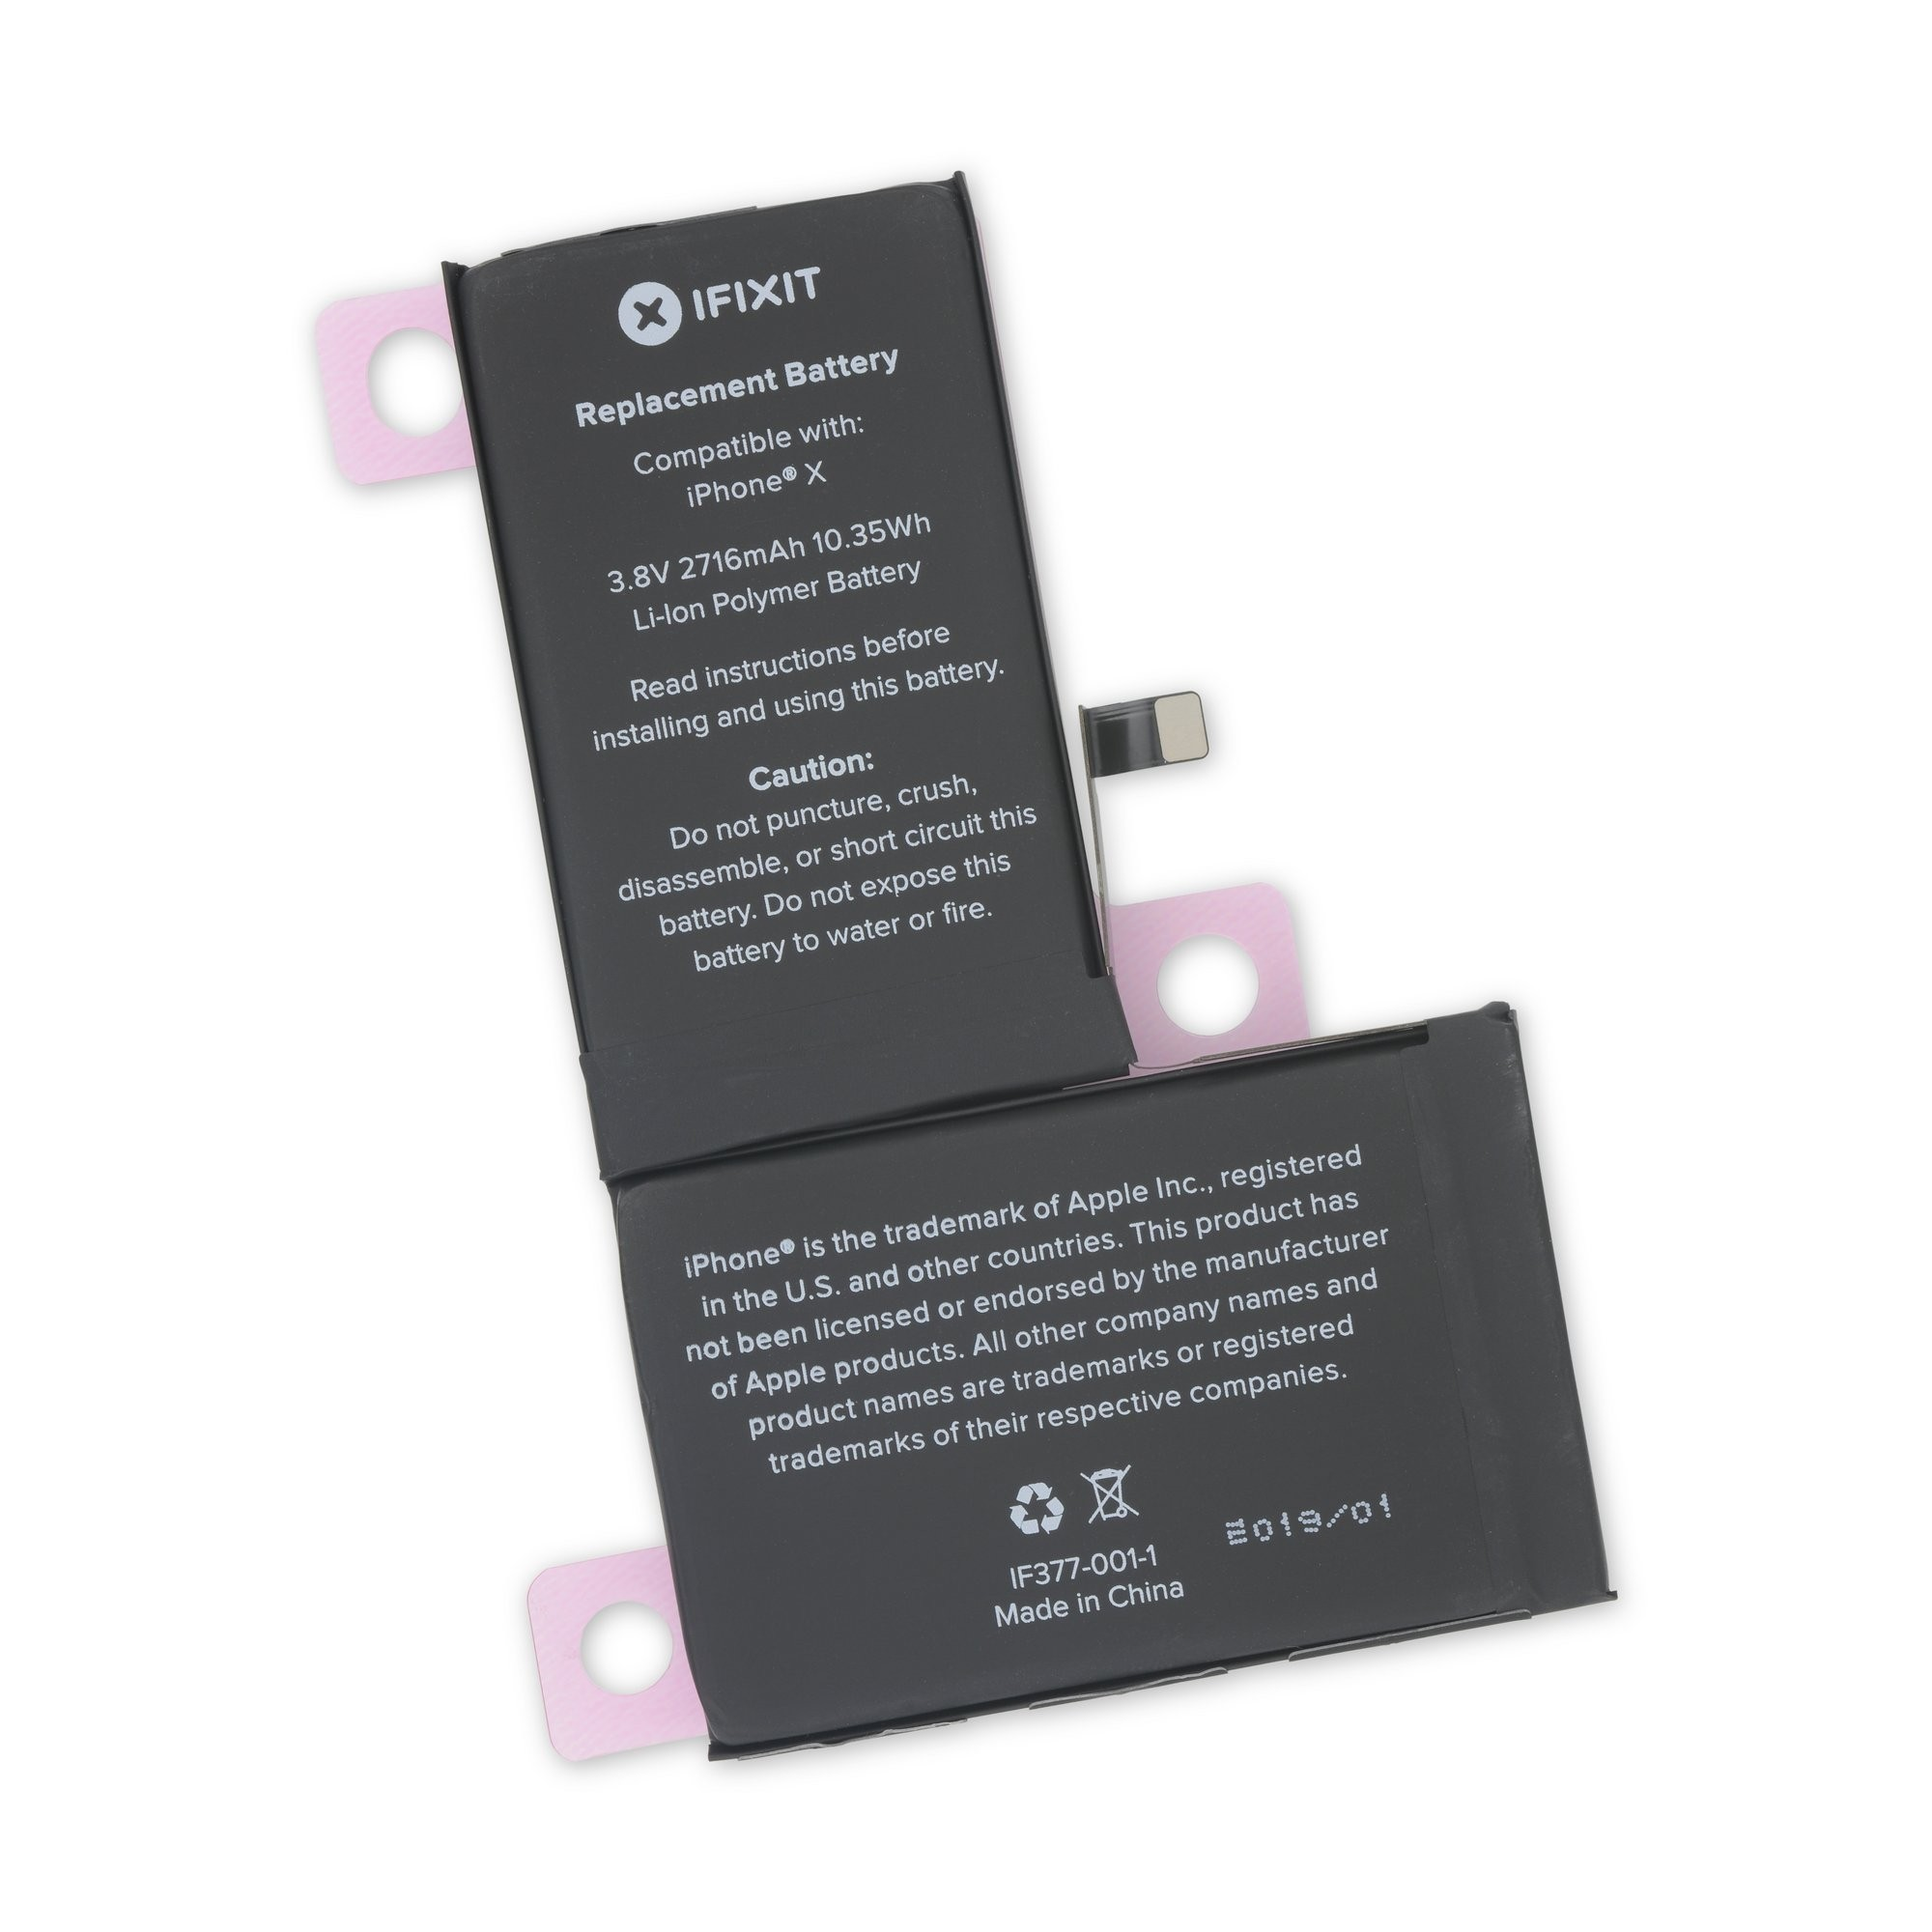 iFixit iPhone X Replacement Battery, Fix Kit - New, IF377-001-2